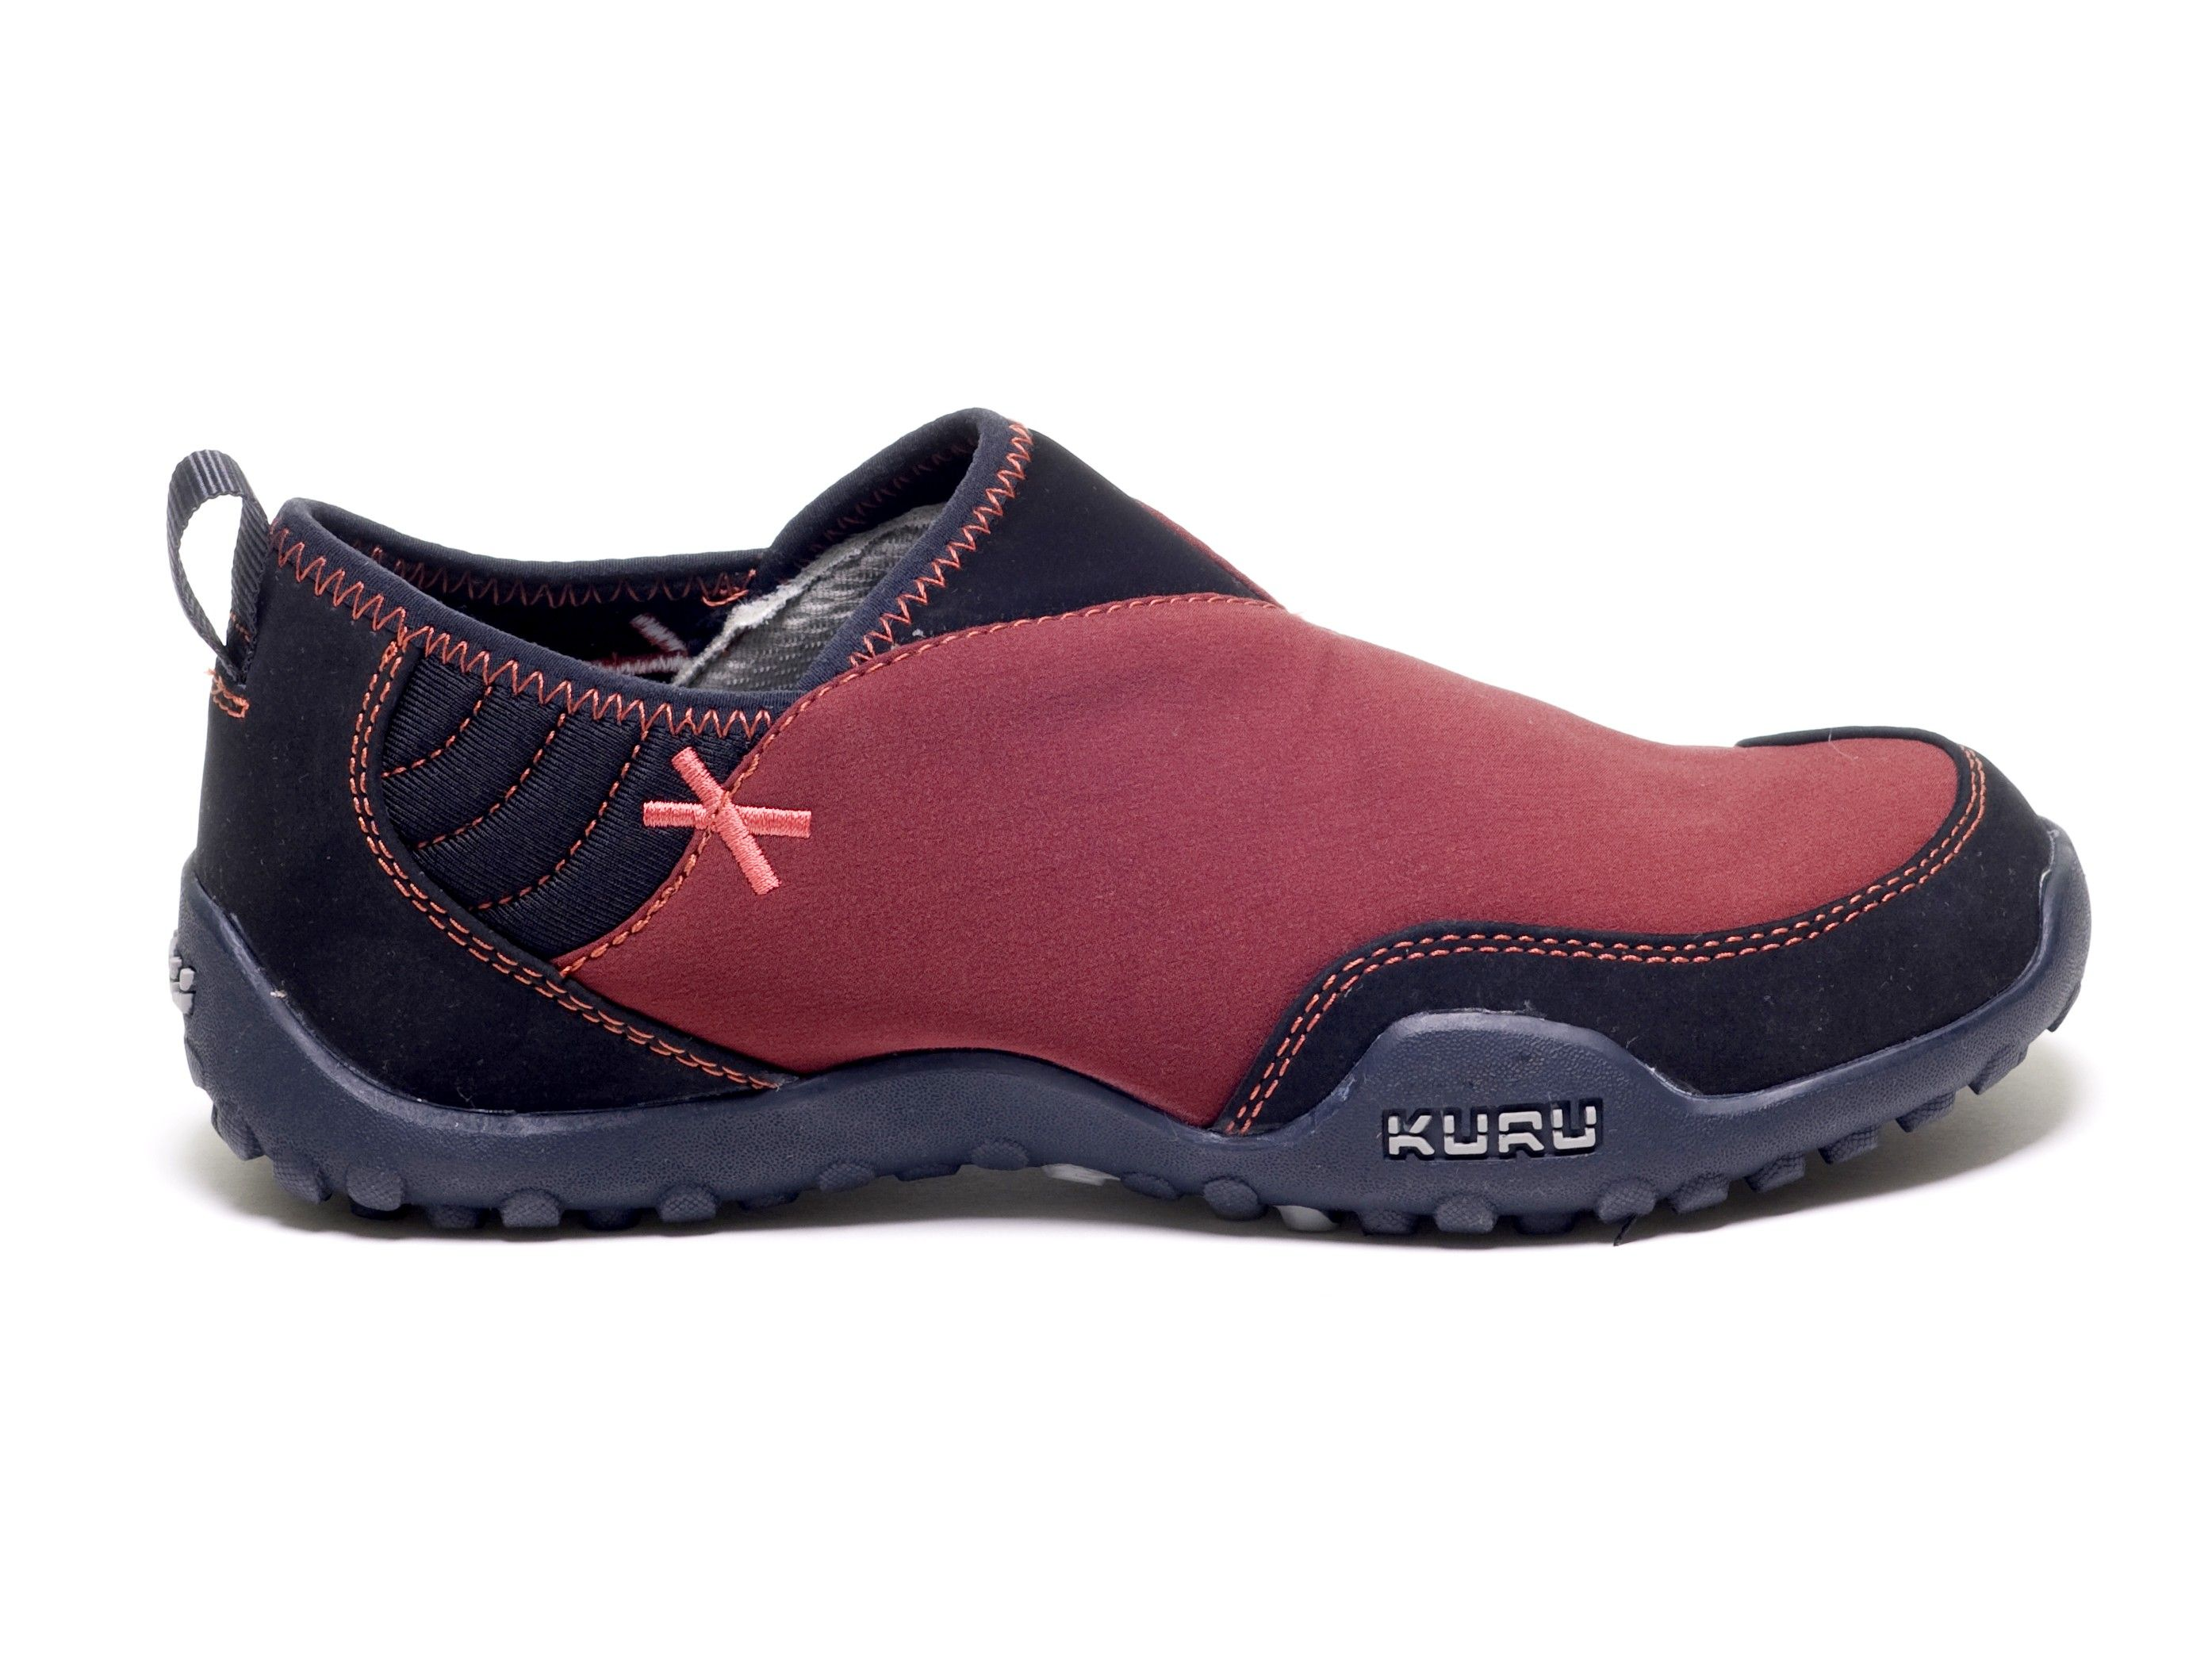 Womens Slip-on Shoes for heel pain relief from KURU